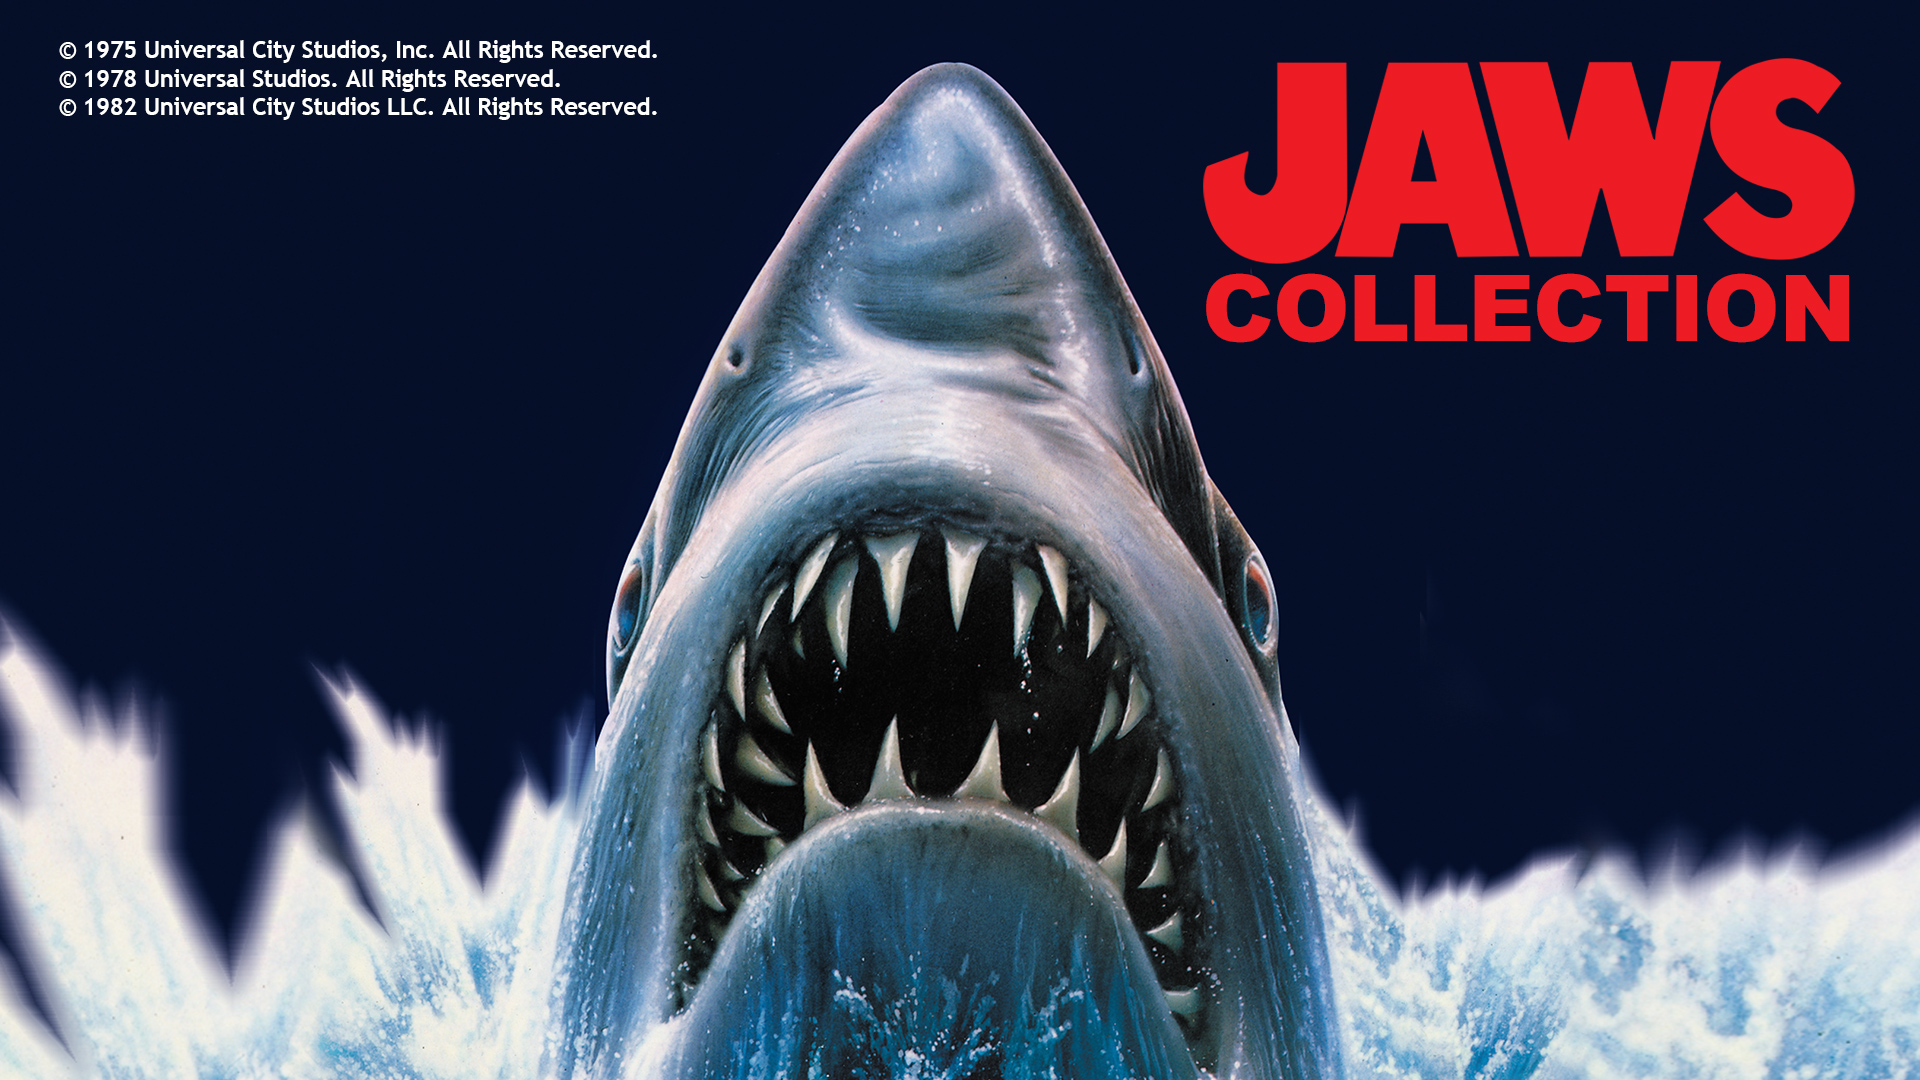 JAWS COLLECTION